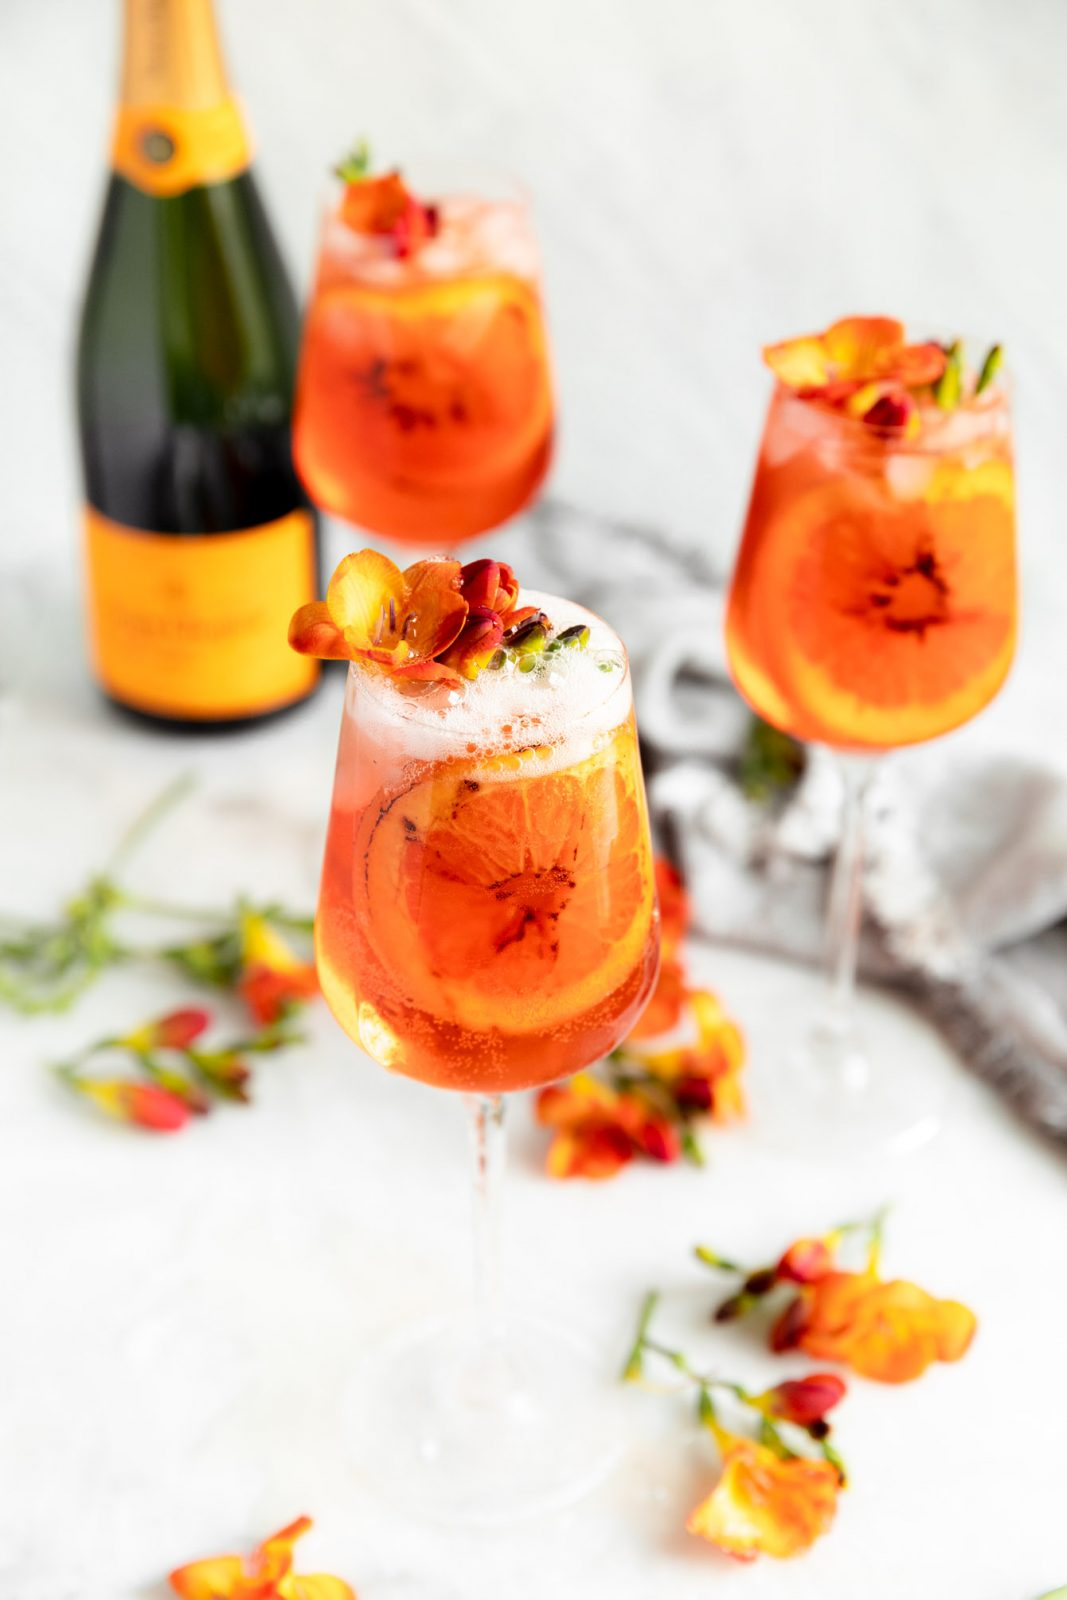 Summer cocktail season is here! We're celebrating with this bubbly and refreshing easy aperol spritz recipe. Perfect for a hot night. Or day :)